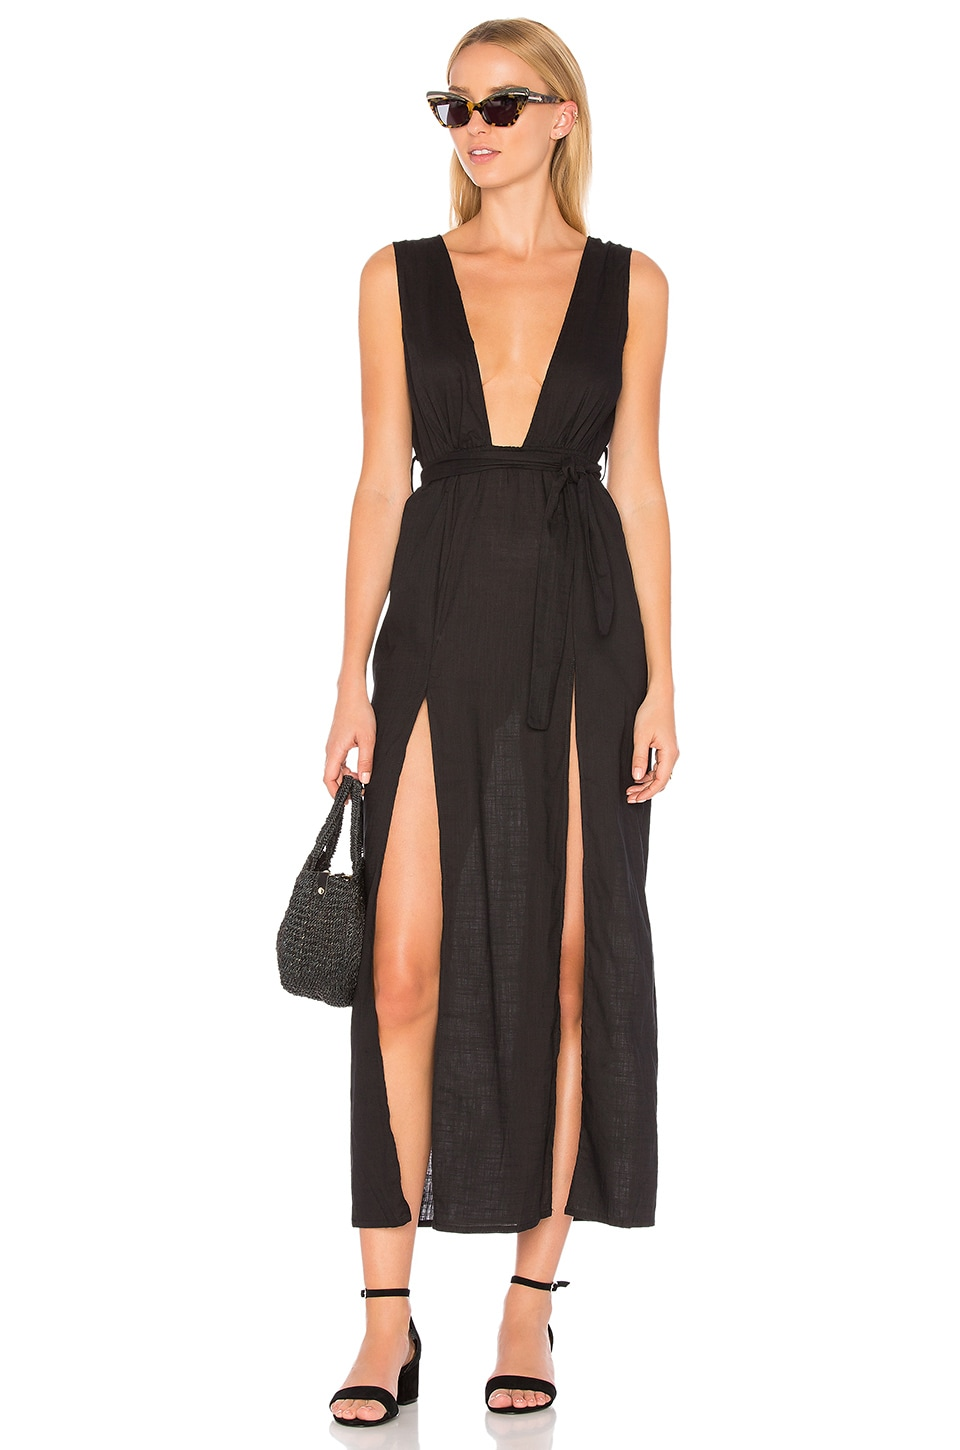 LIONESS Esperanza Plunge Maxi Dress in Black